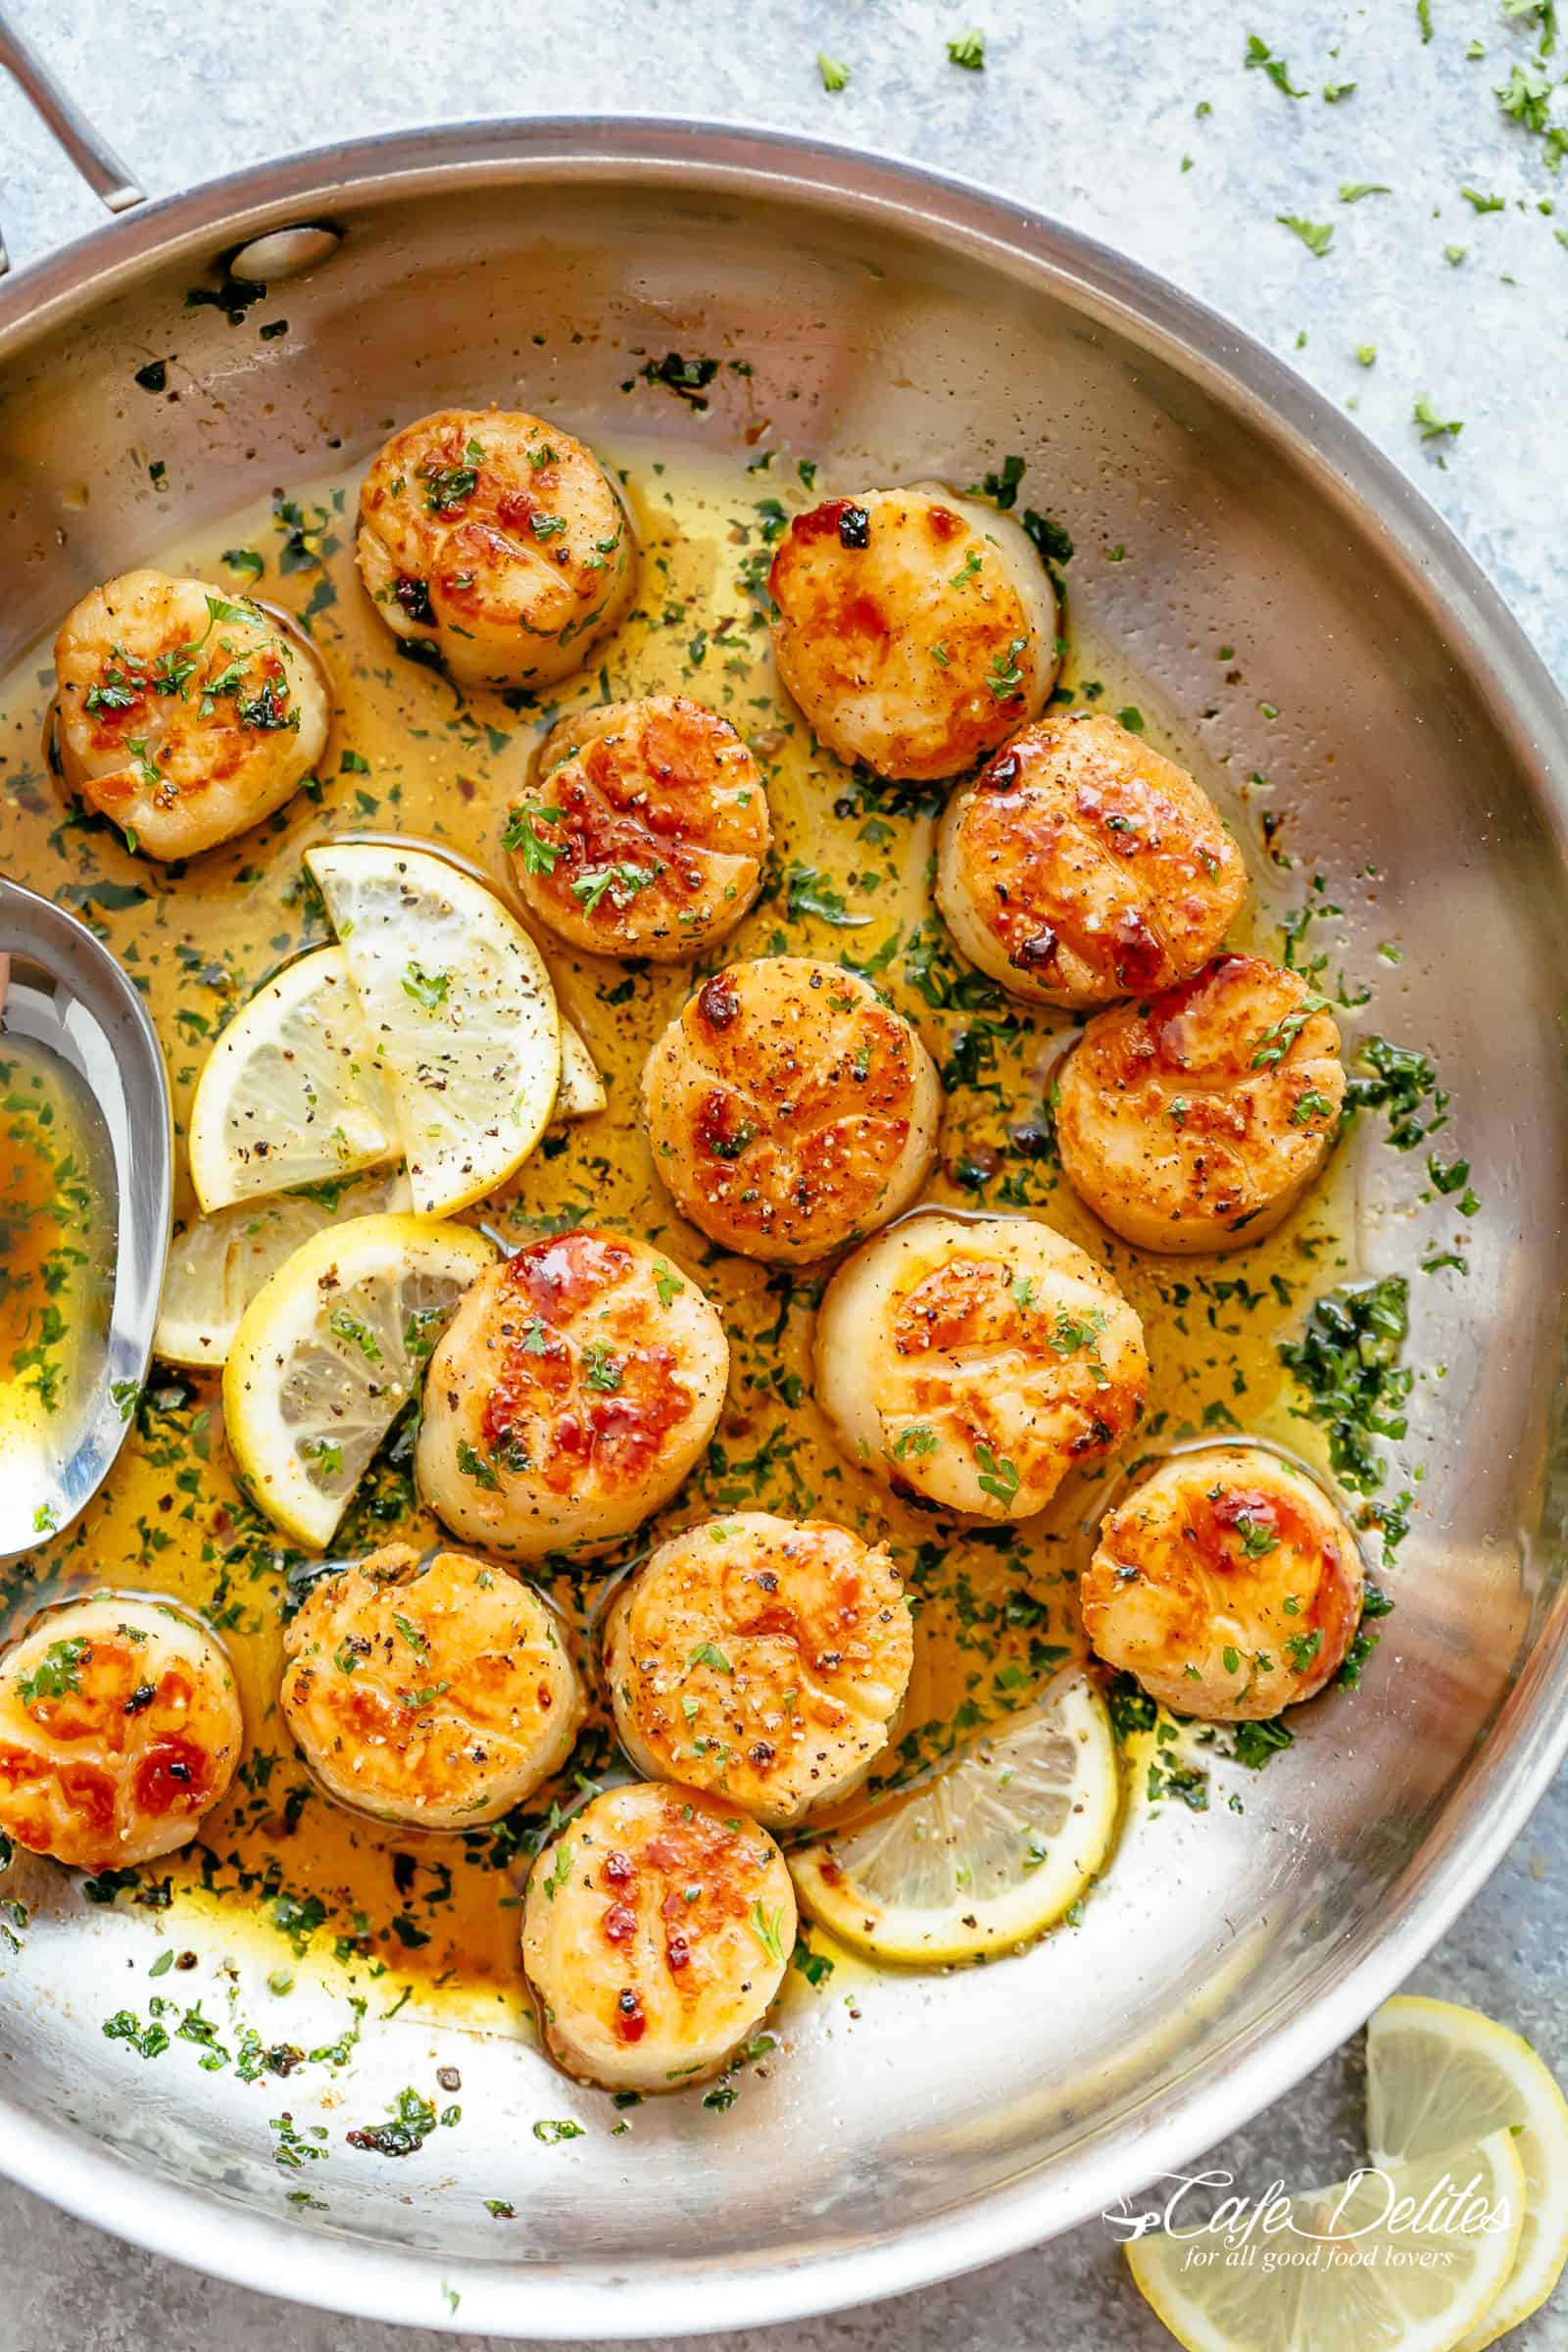 Have Crispy Lemon Garlic Butter Scallops on your table in less than 10 minutes, coated in a deliciously silky lemon garlic butter sauce! Cheaper than going out to a restaurant and just as good as chef made scallops! They are the ultimate treat! | cafedelites.com